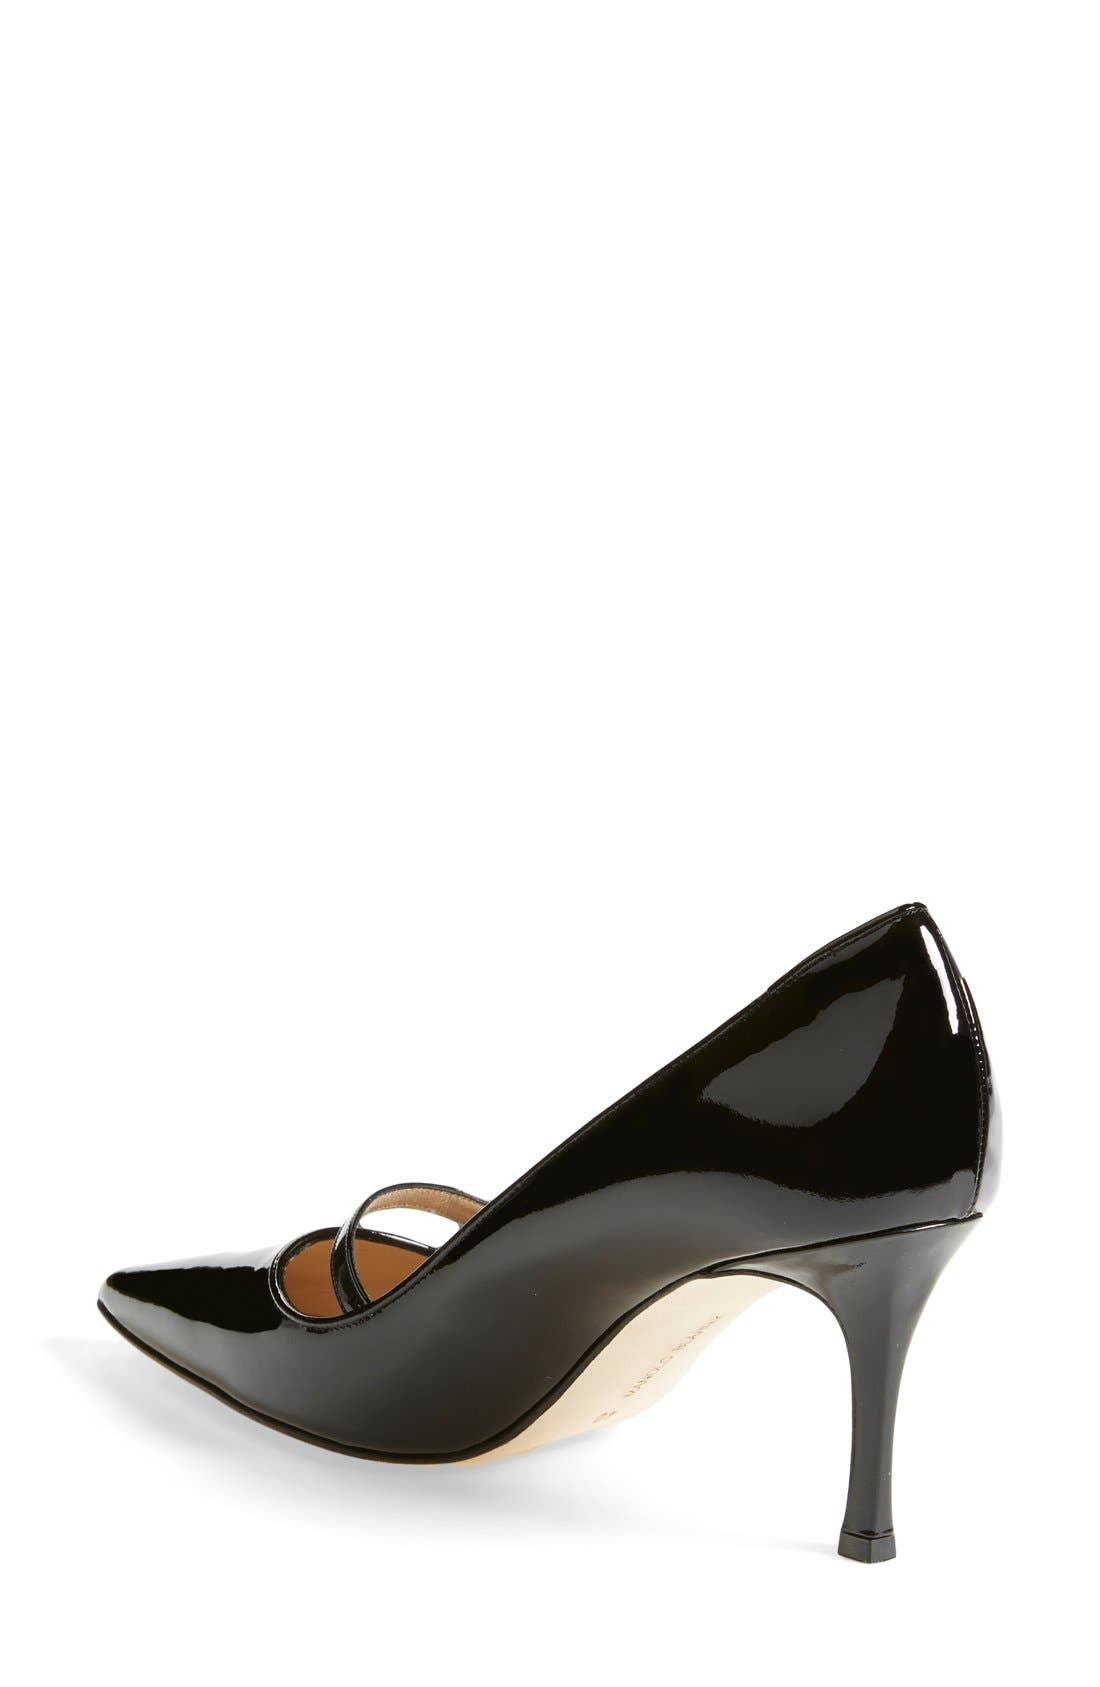 Alternate Image 2  - Manolo Blahnik 'Mladari' Mary Jane Pump (Women)